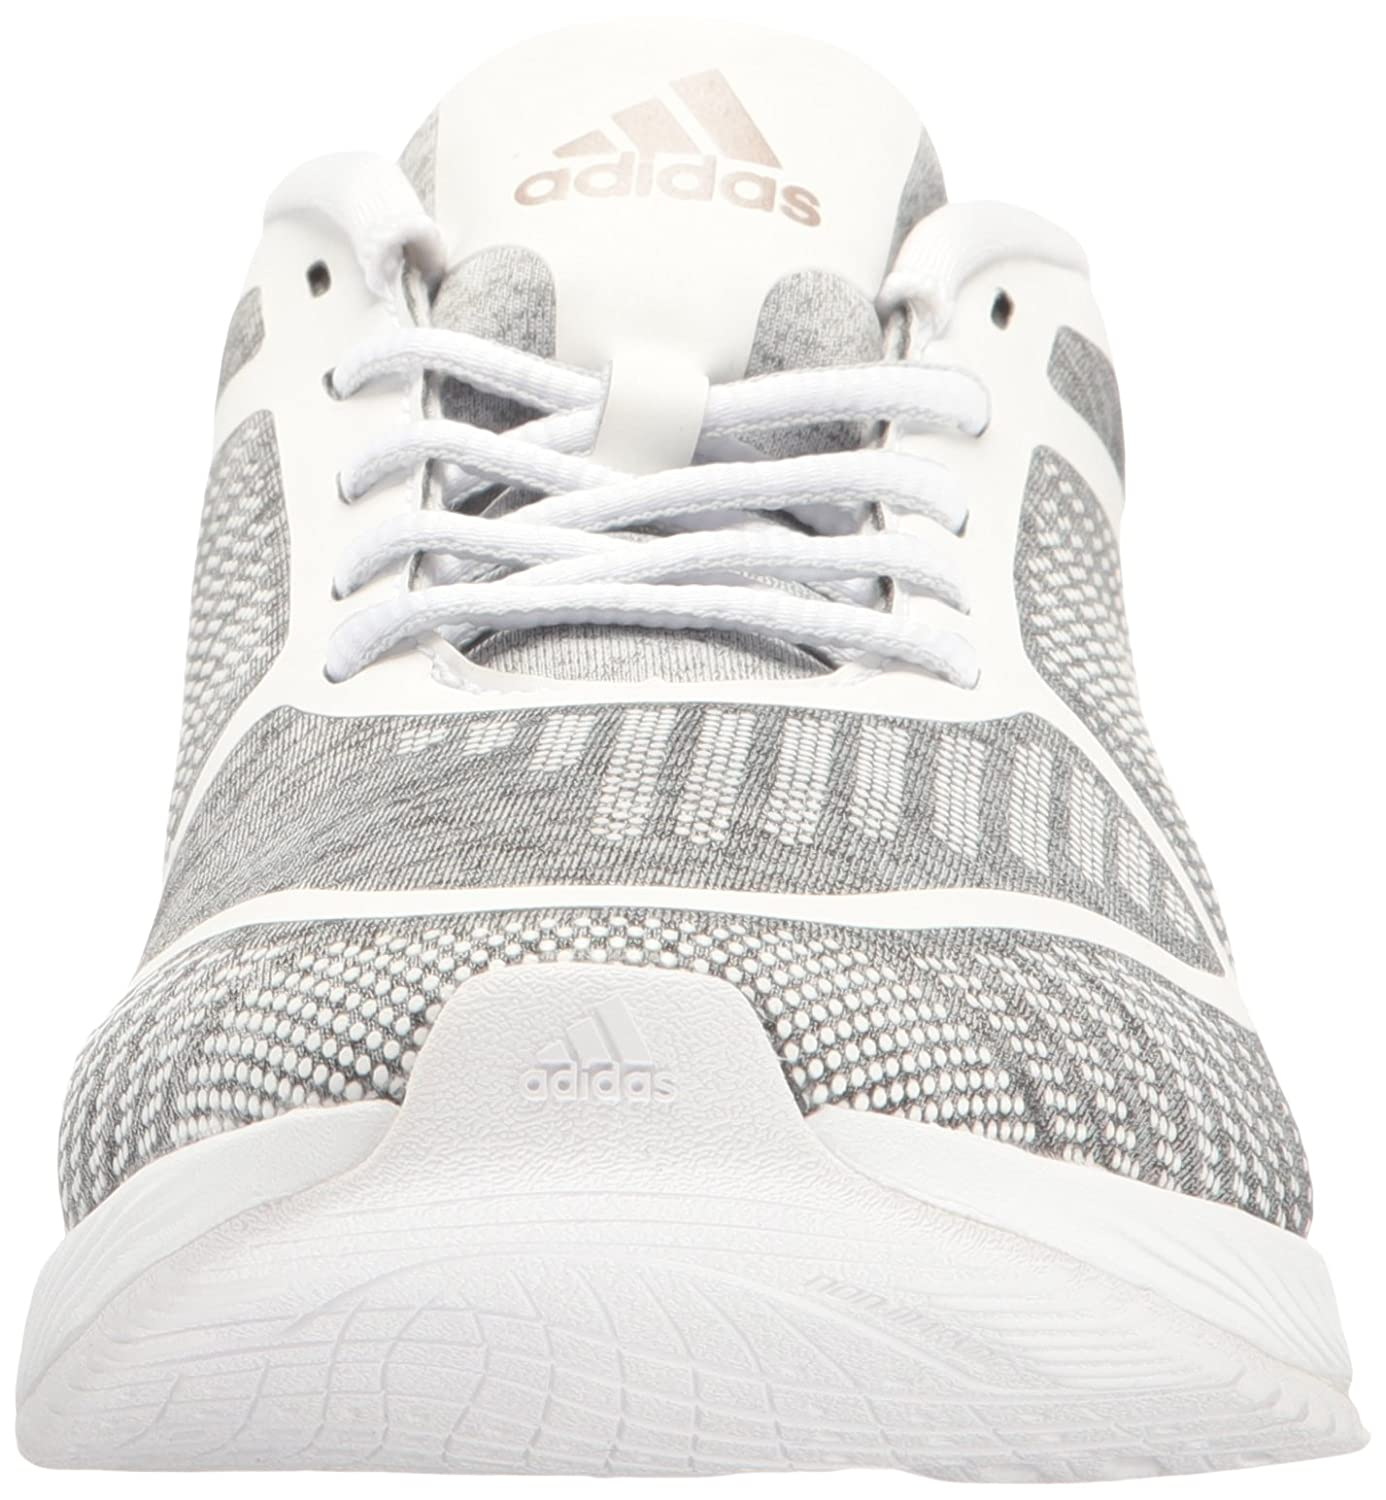 check out c42c7 9eda1 Zapatillas Adidas Performance para mujer Athletics Bounce W Cross-Trainer  Gris claro Heather   Vapor Gris   Blanco